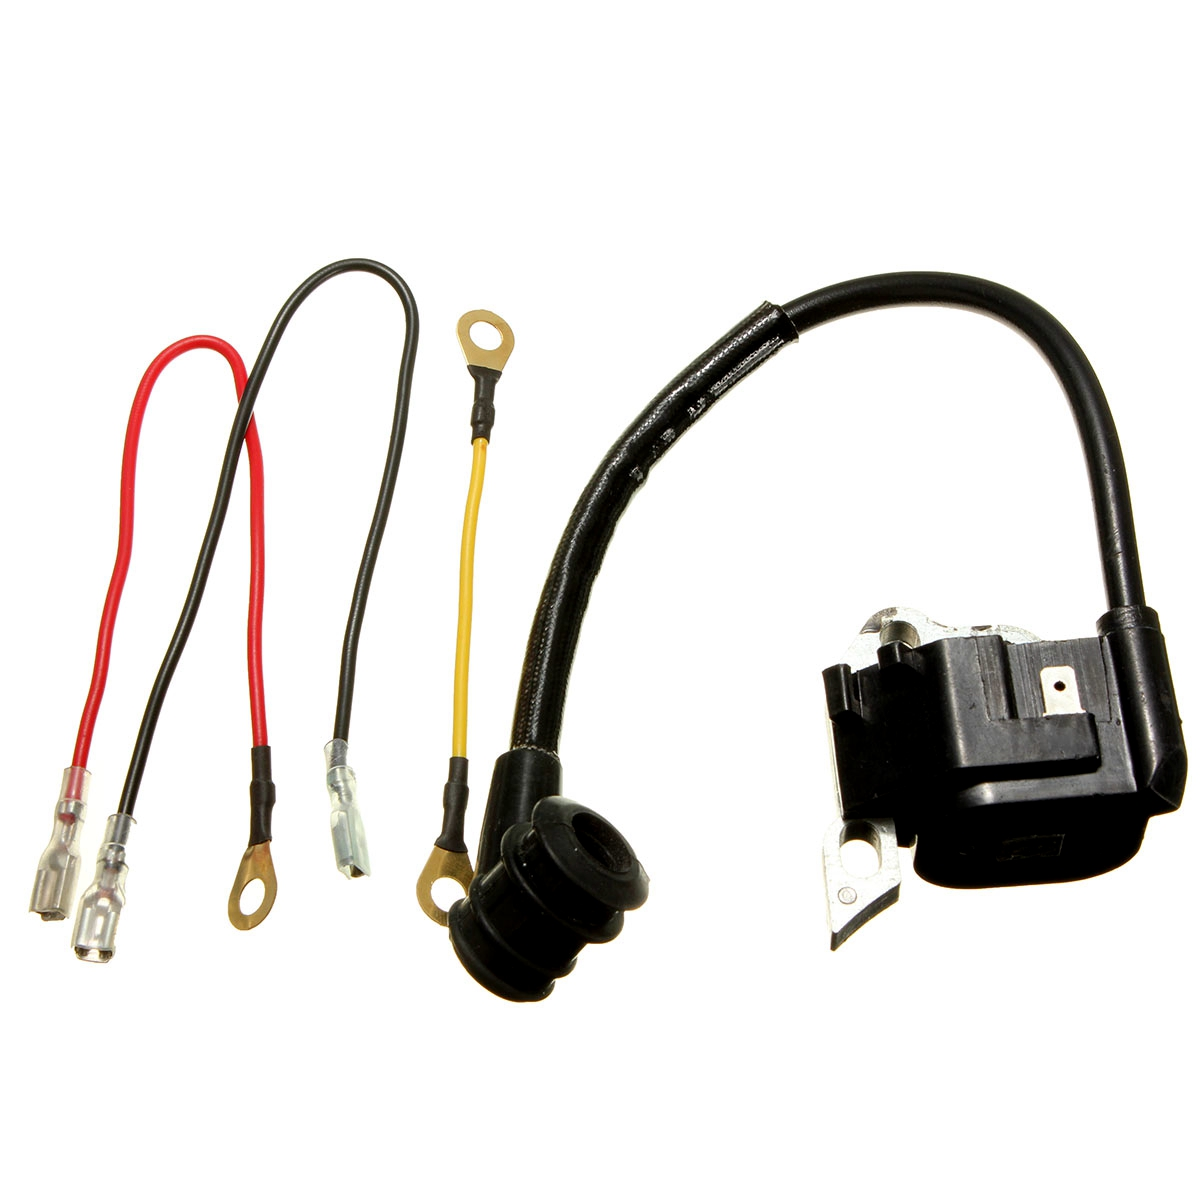 Ignition Coil Module For Stihl MS230 023 MS250 025 MS210 020 021 023 025 020T 0000-400-1306